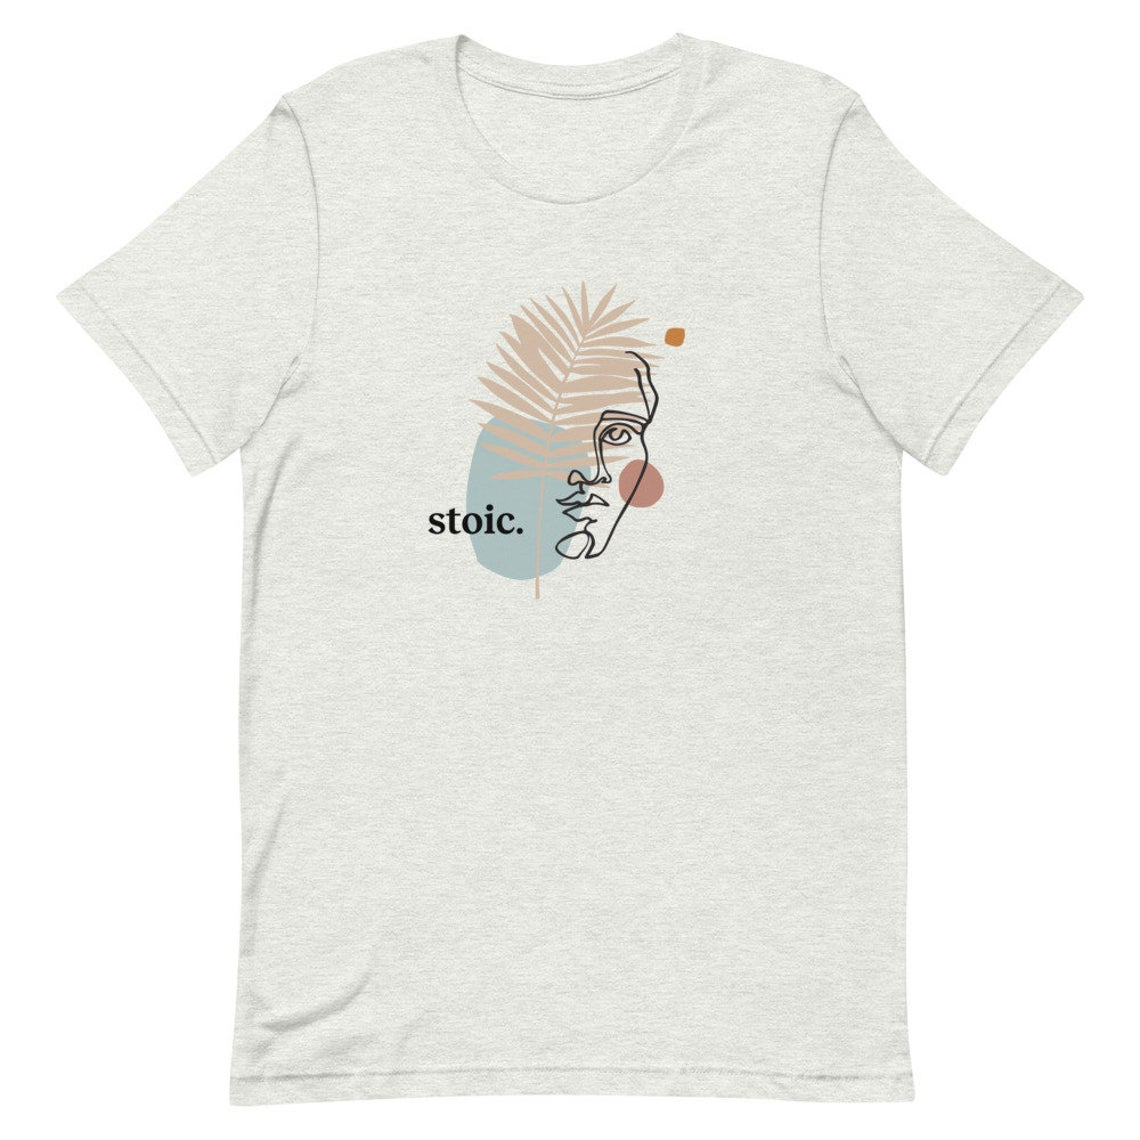 Abstract drawing of a face on a tshirt